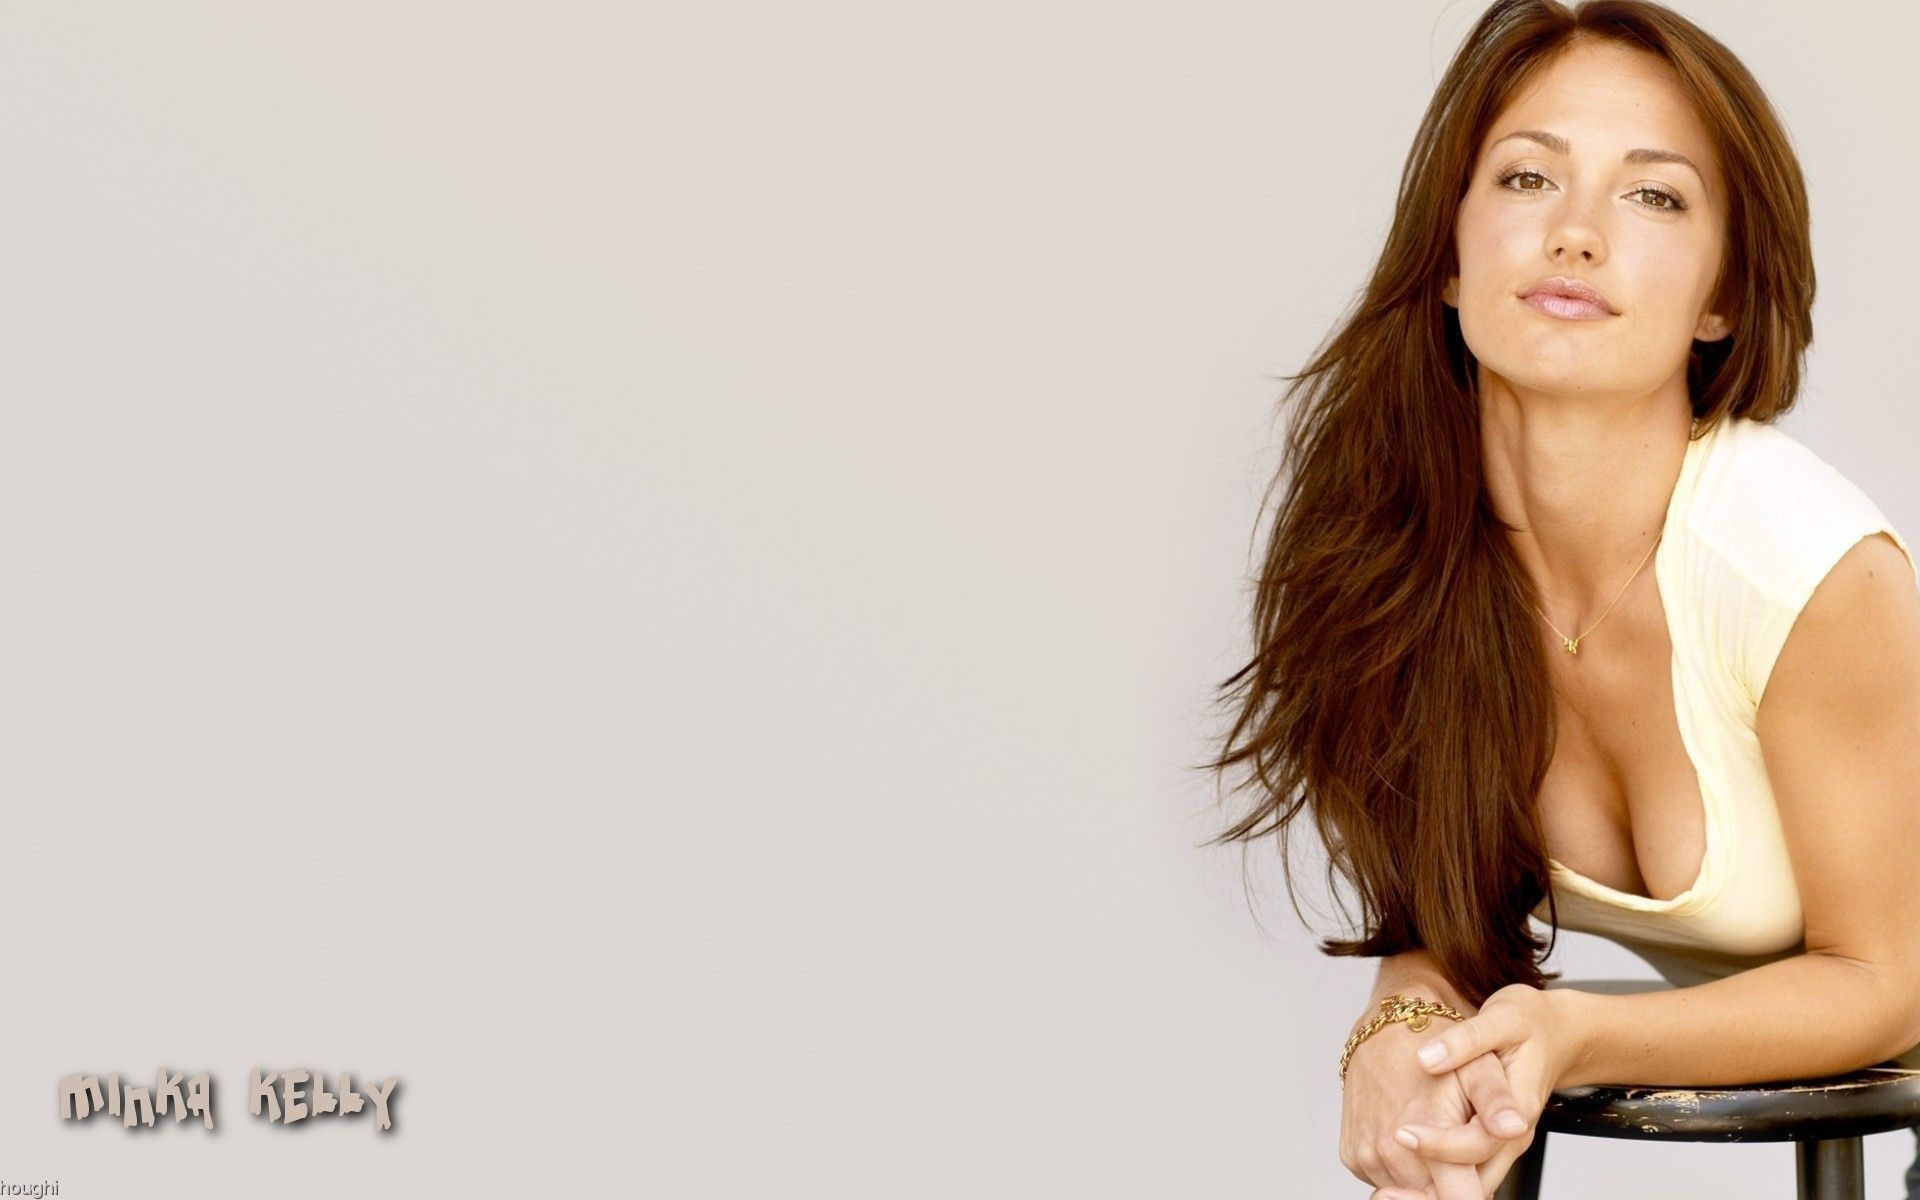 Minka Kelly 2014 download